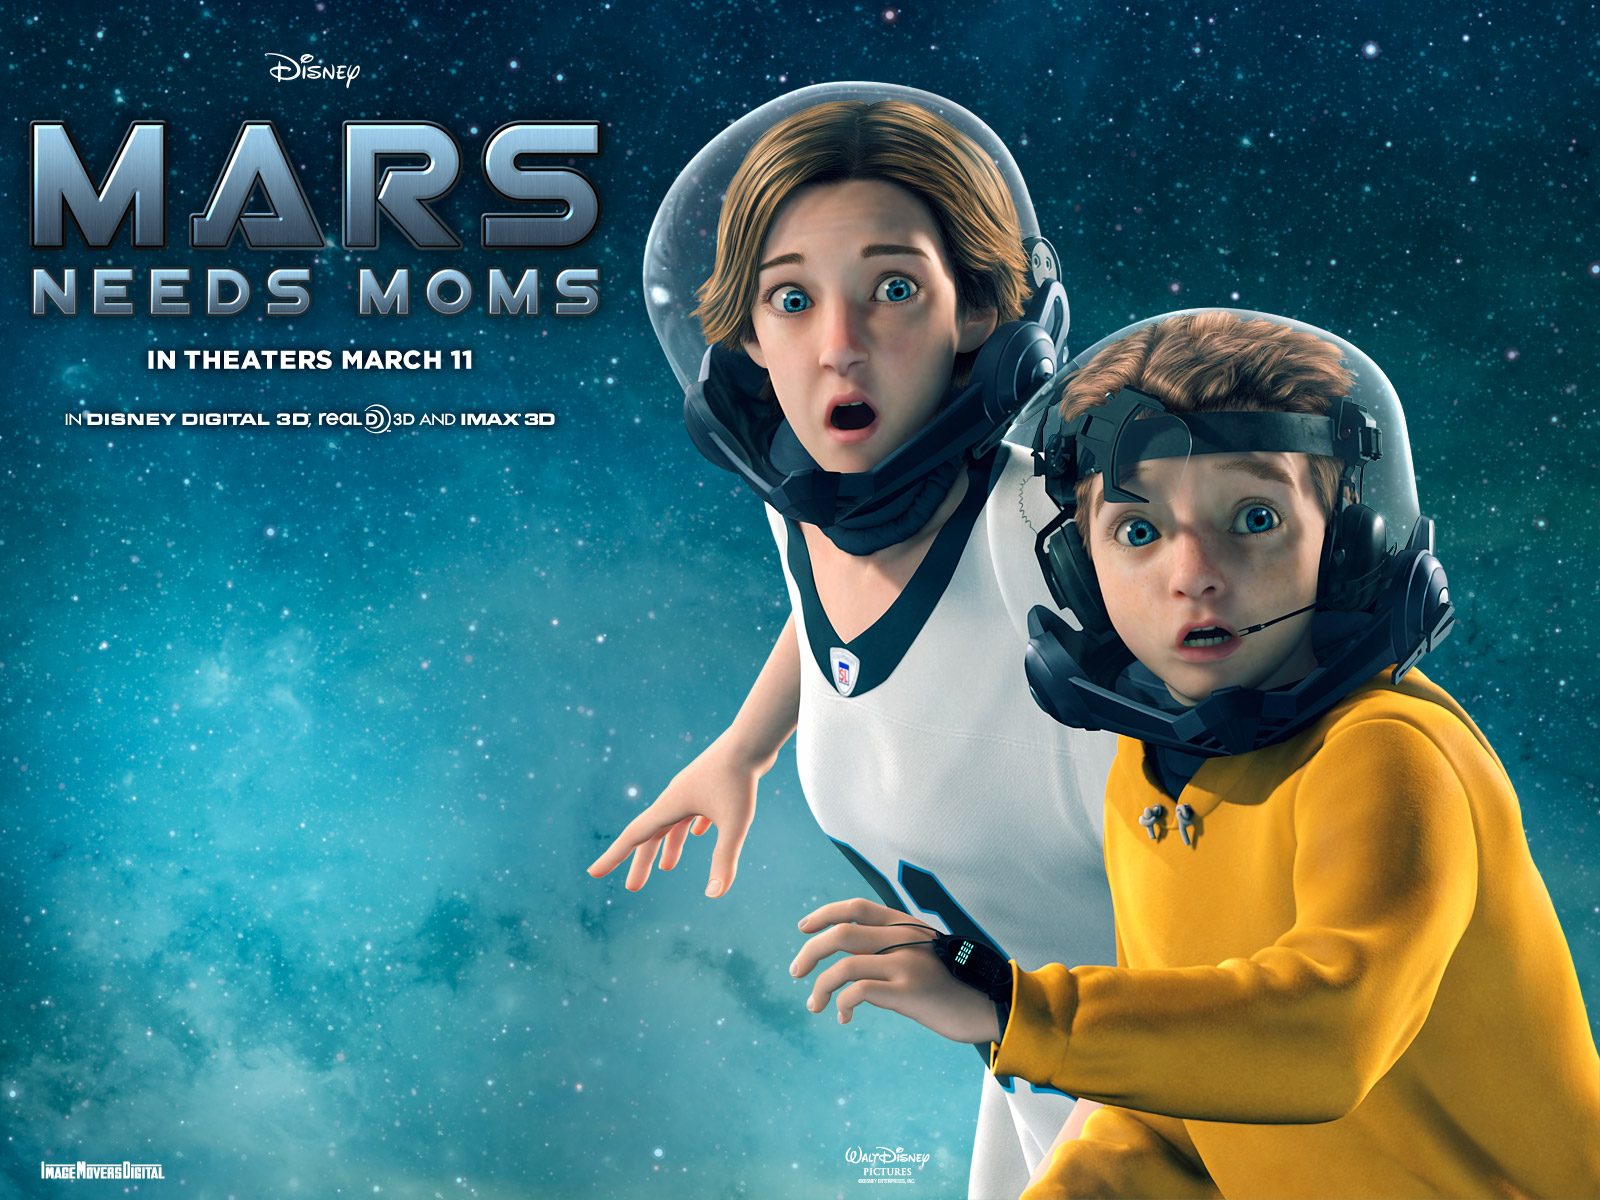 Joan_Cusack_in_Mars_Needs_Moms_Wallpaper_4_800